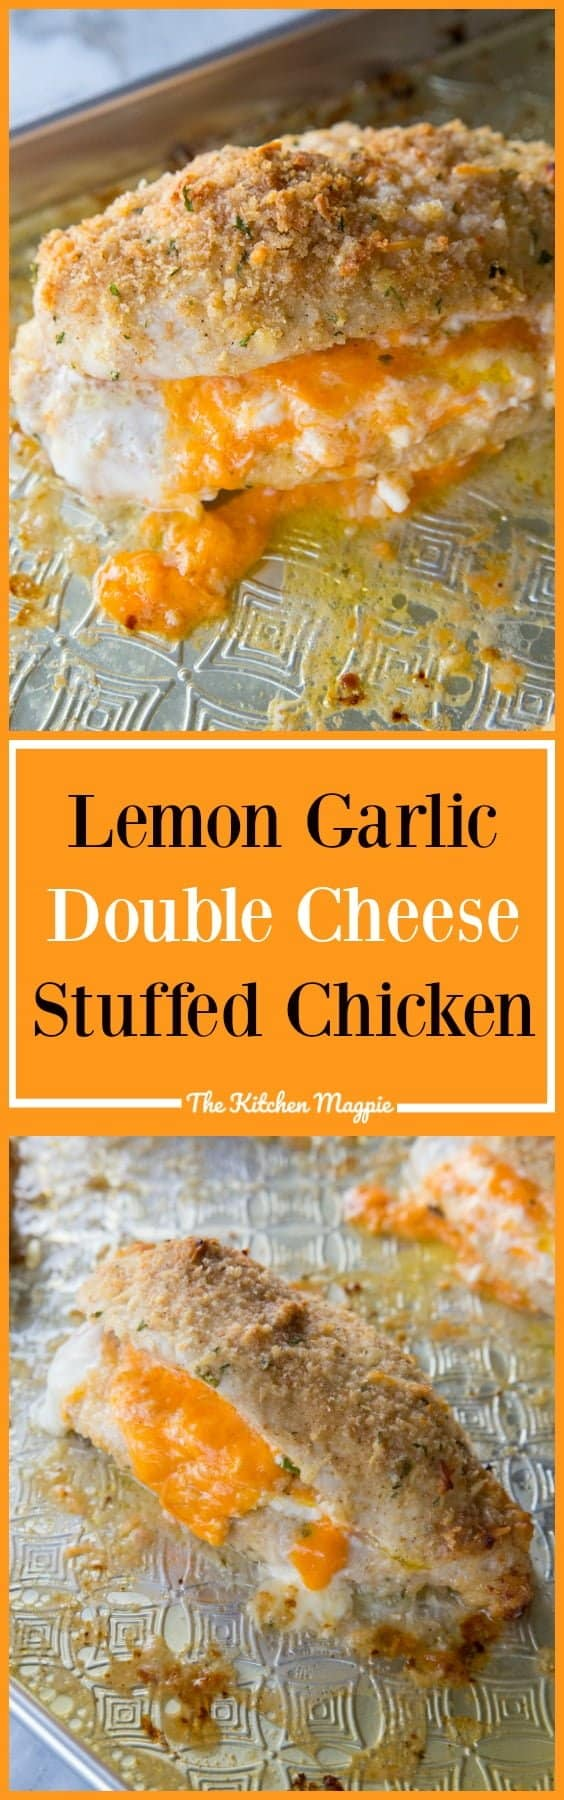 Lemon Garlic Double Cheese Stuffed Chicken From @thekitchenmagpie